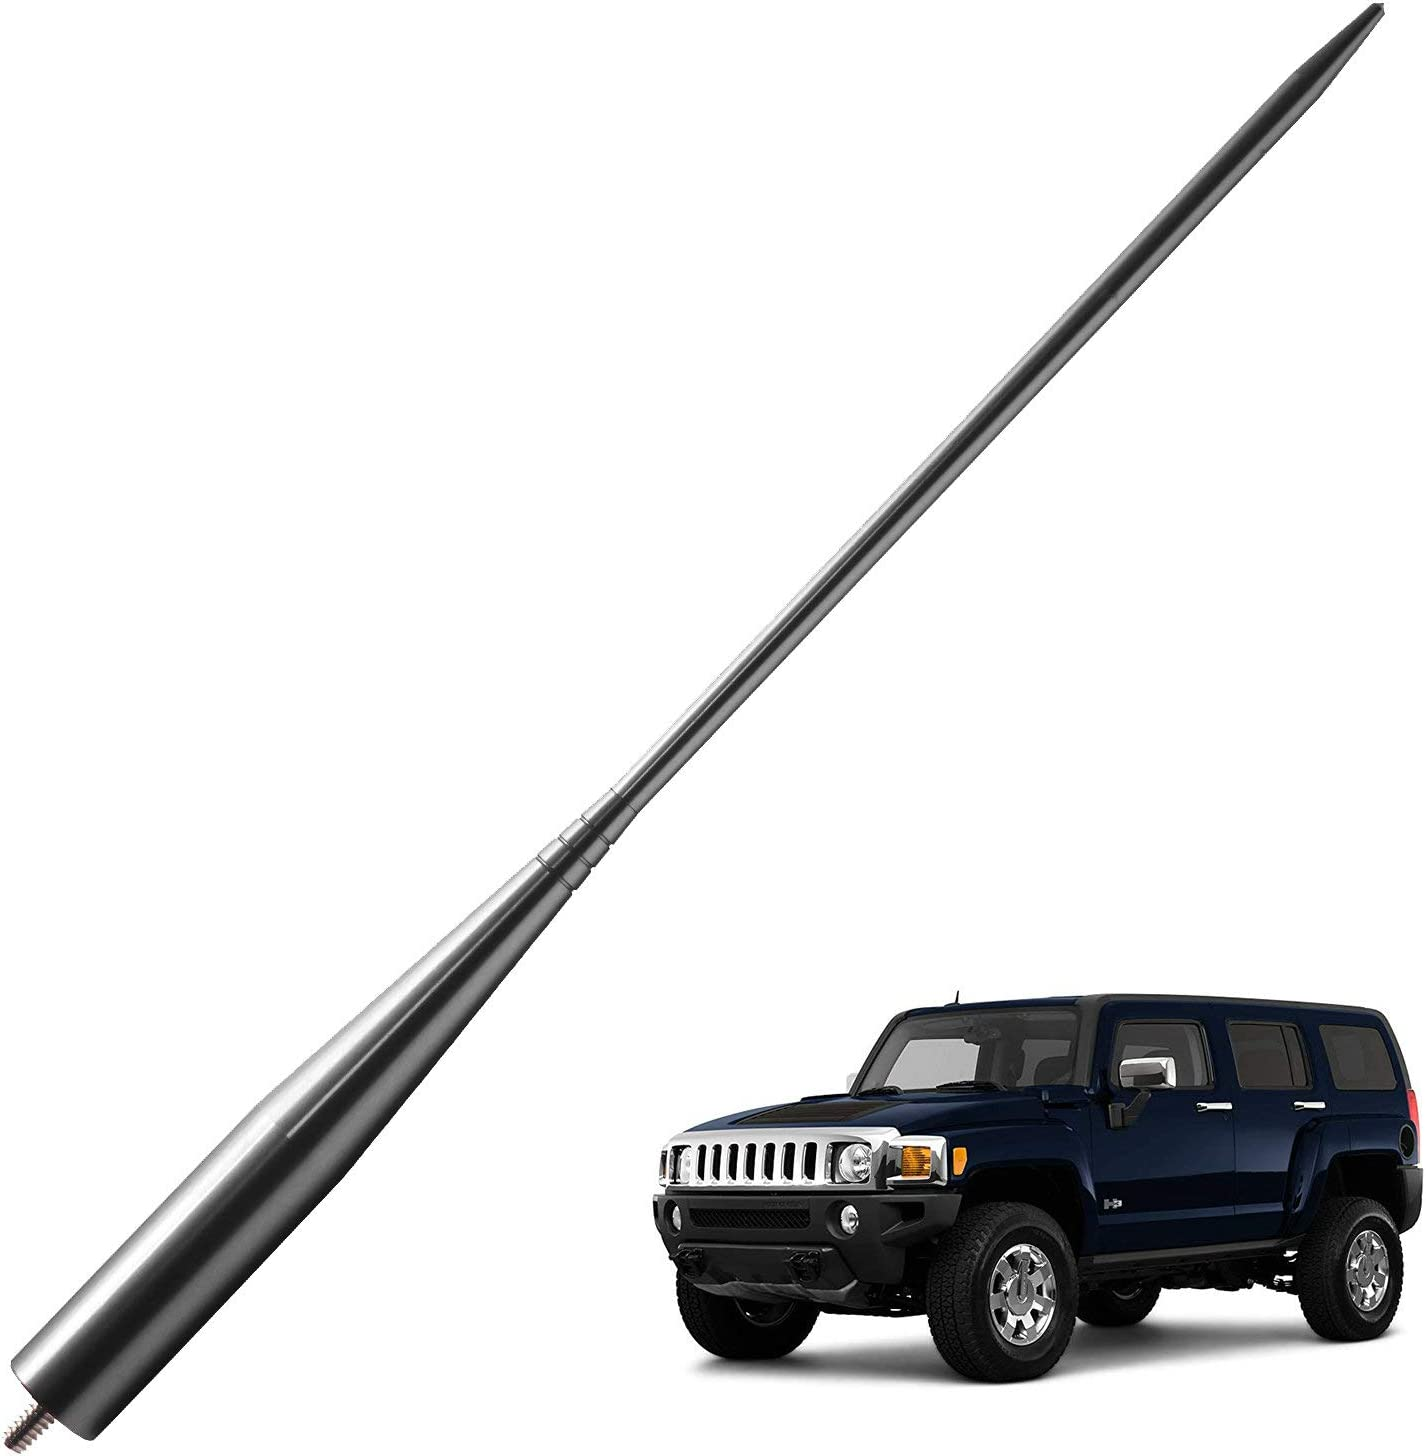 JAPower Rapid rise Replacement Antenna Compatible H3 2006-2010 Hummer Louisville-Jefferson County Mall with